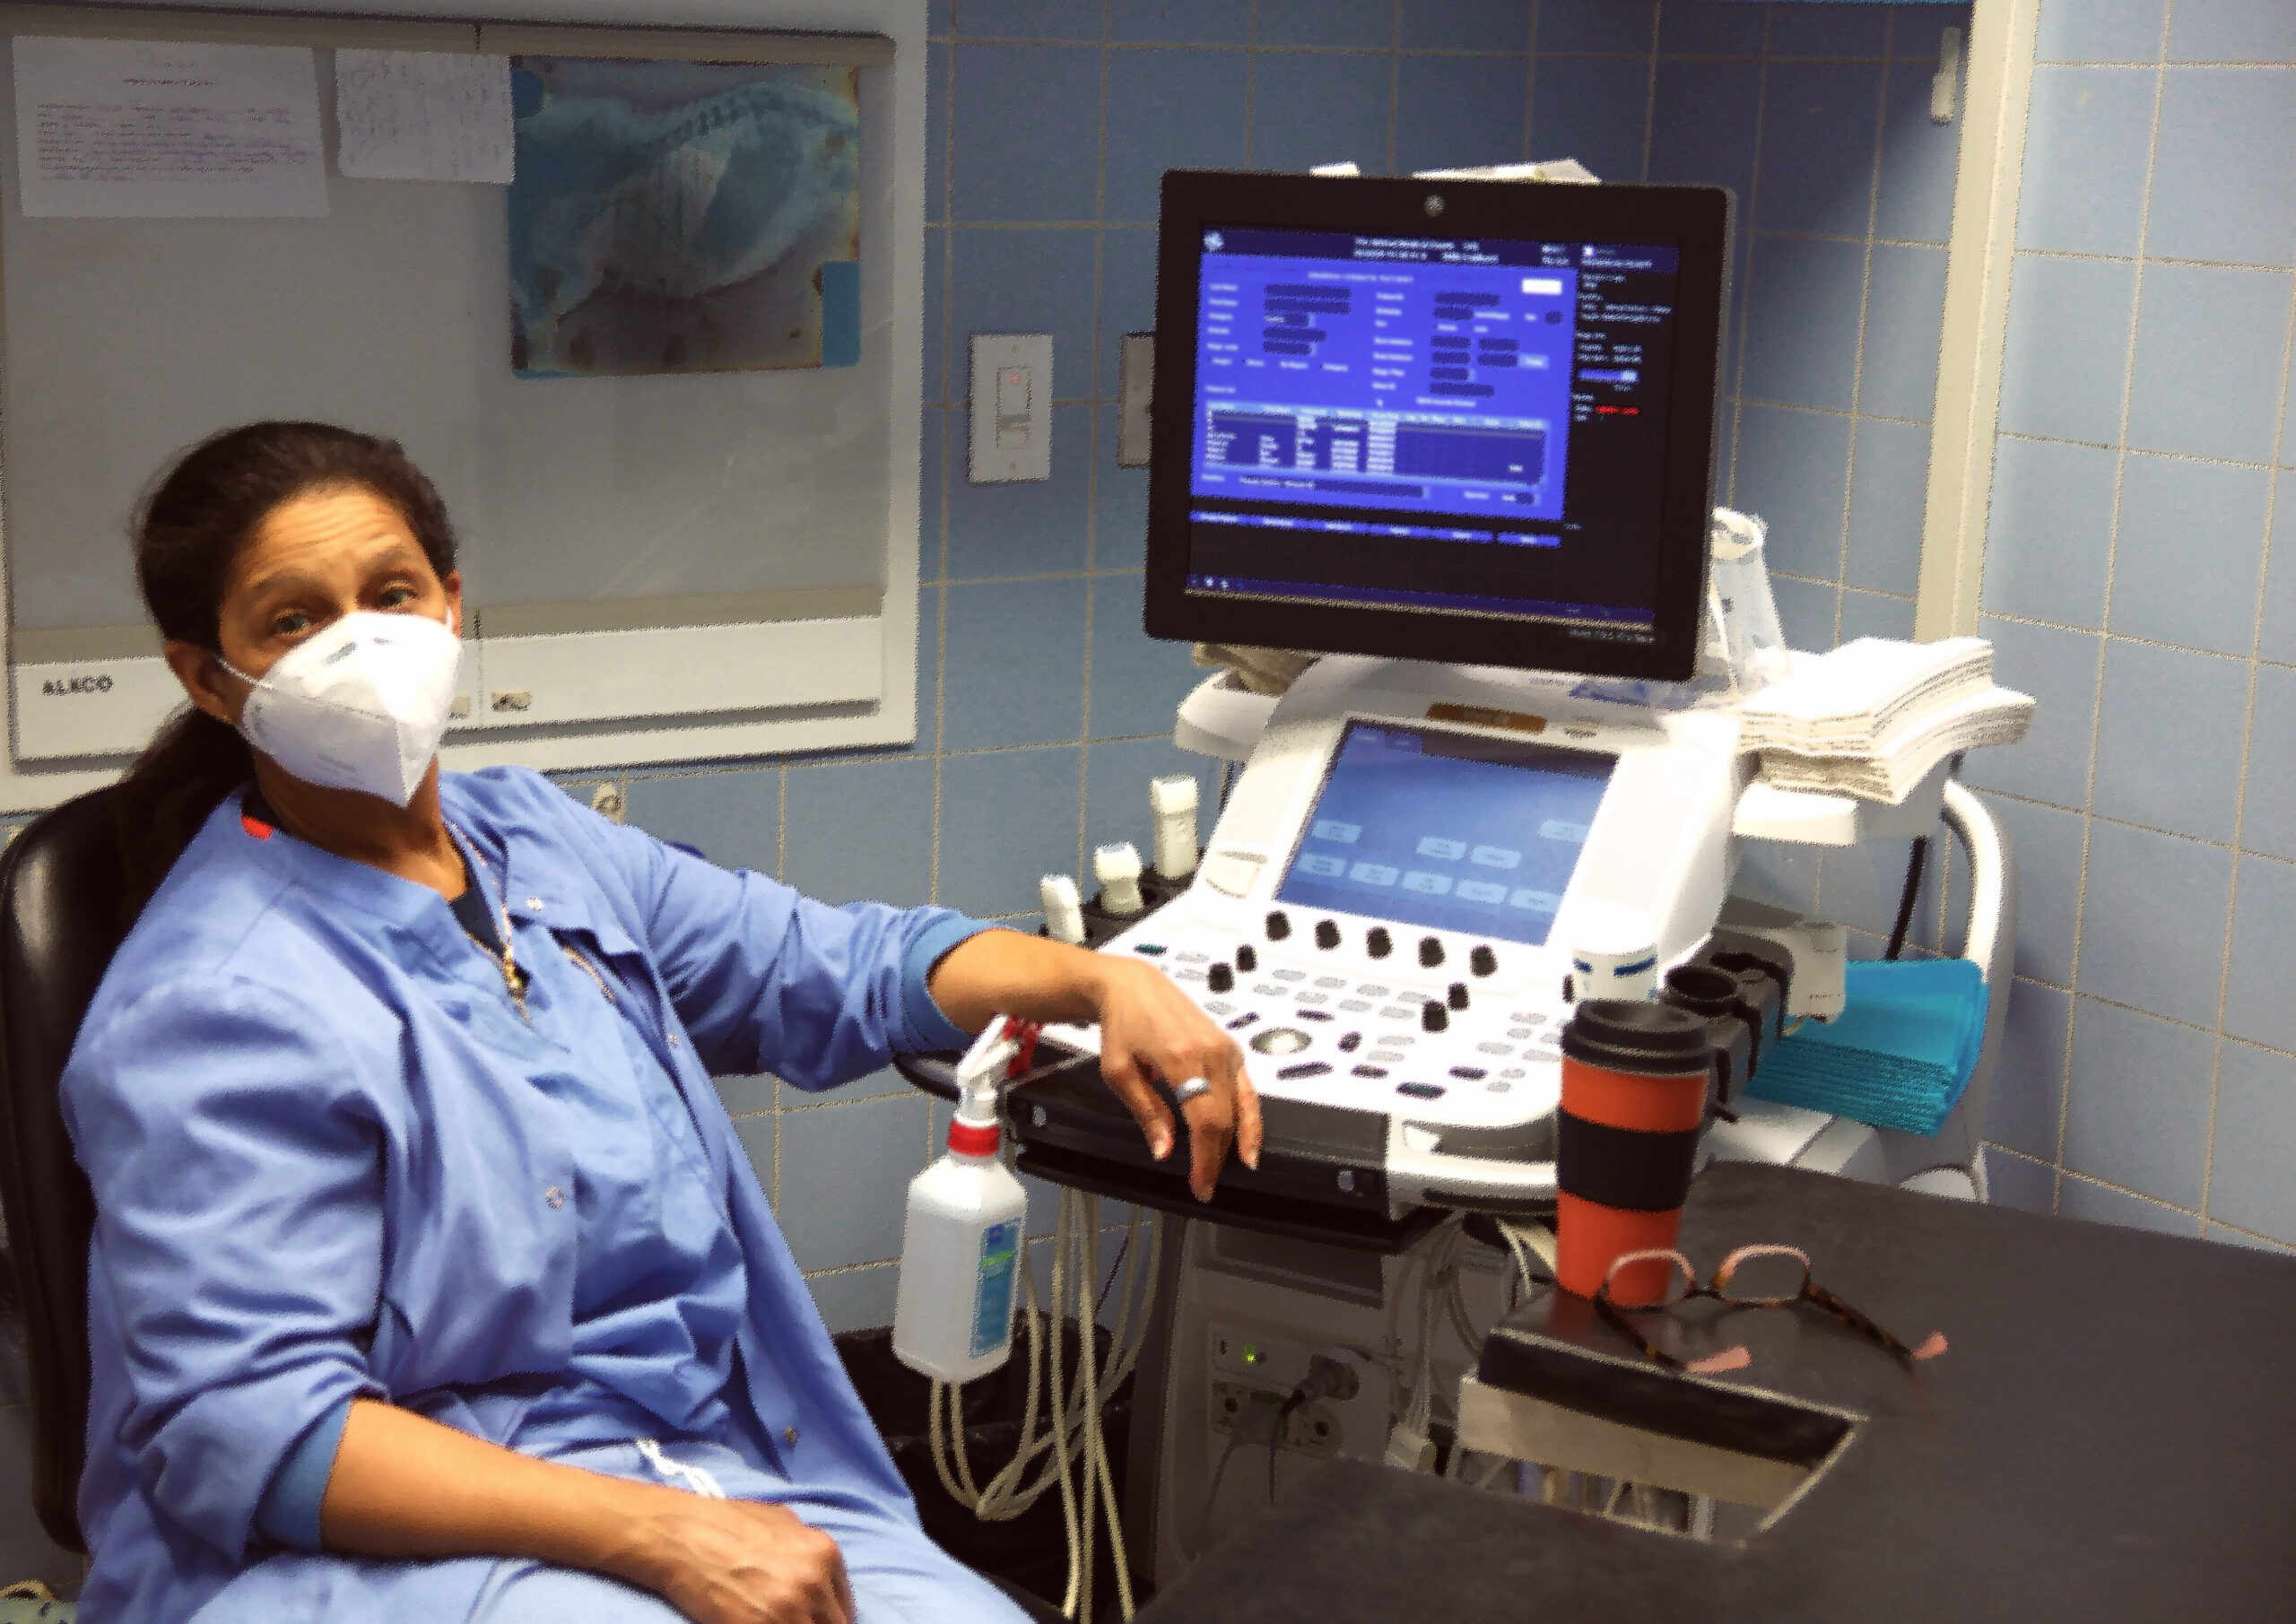 A masked veterinary professional sits at an echocardiogram machine